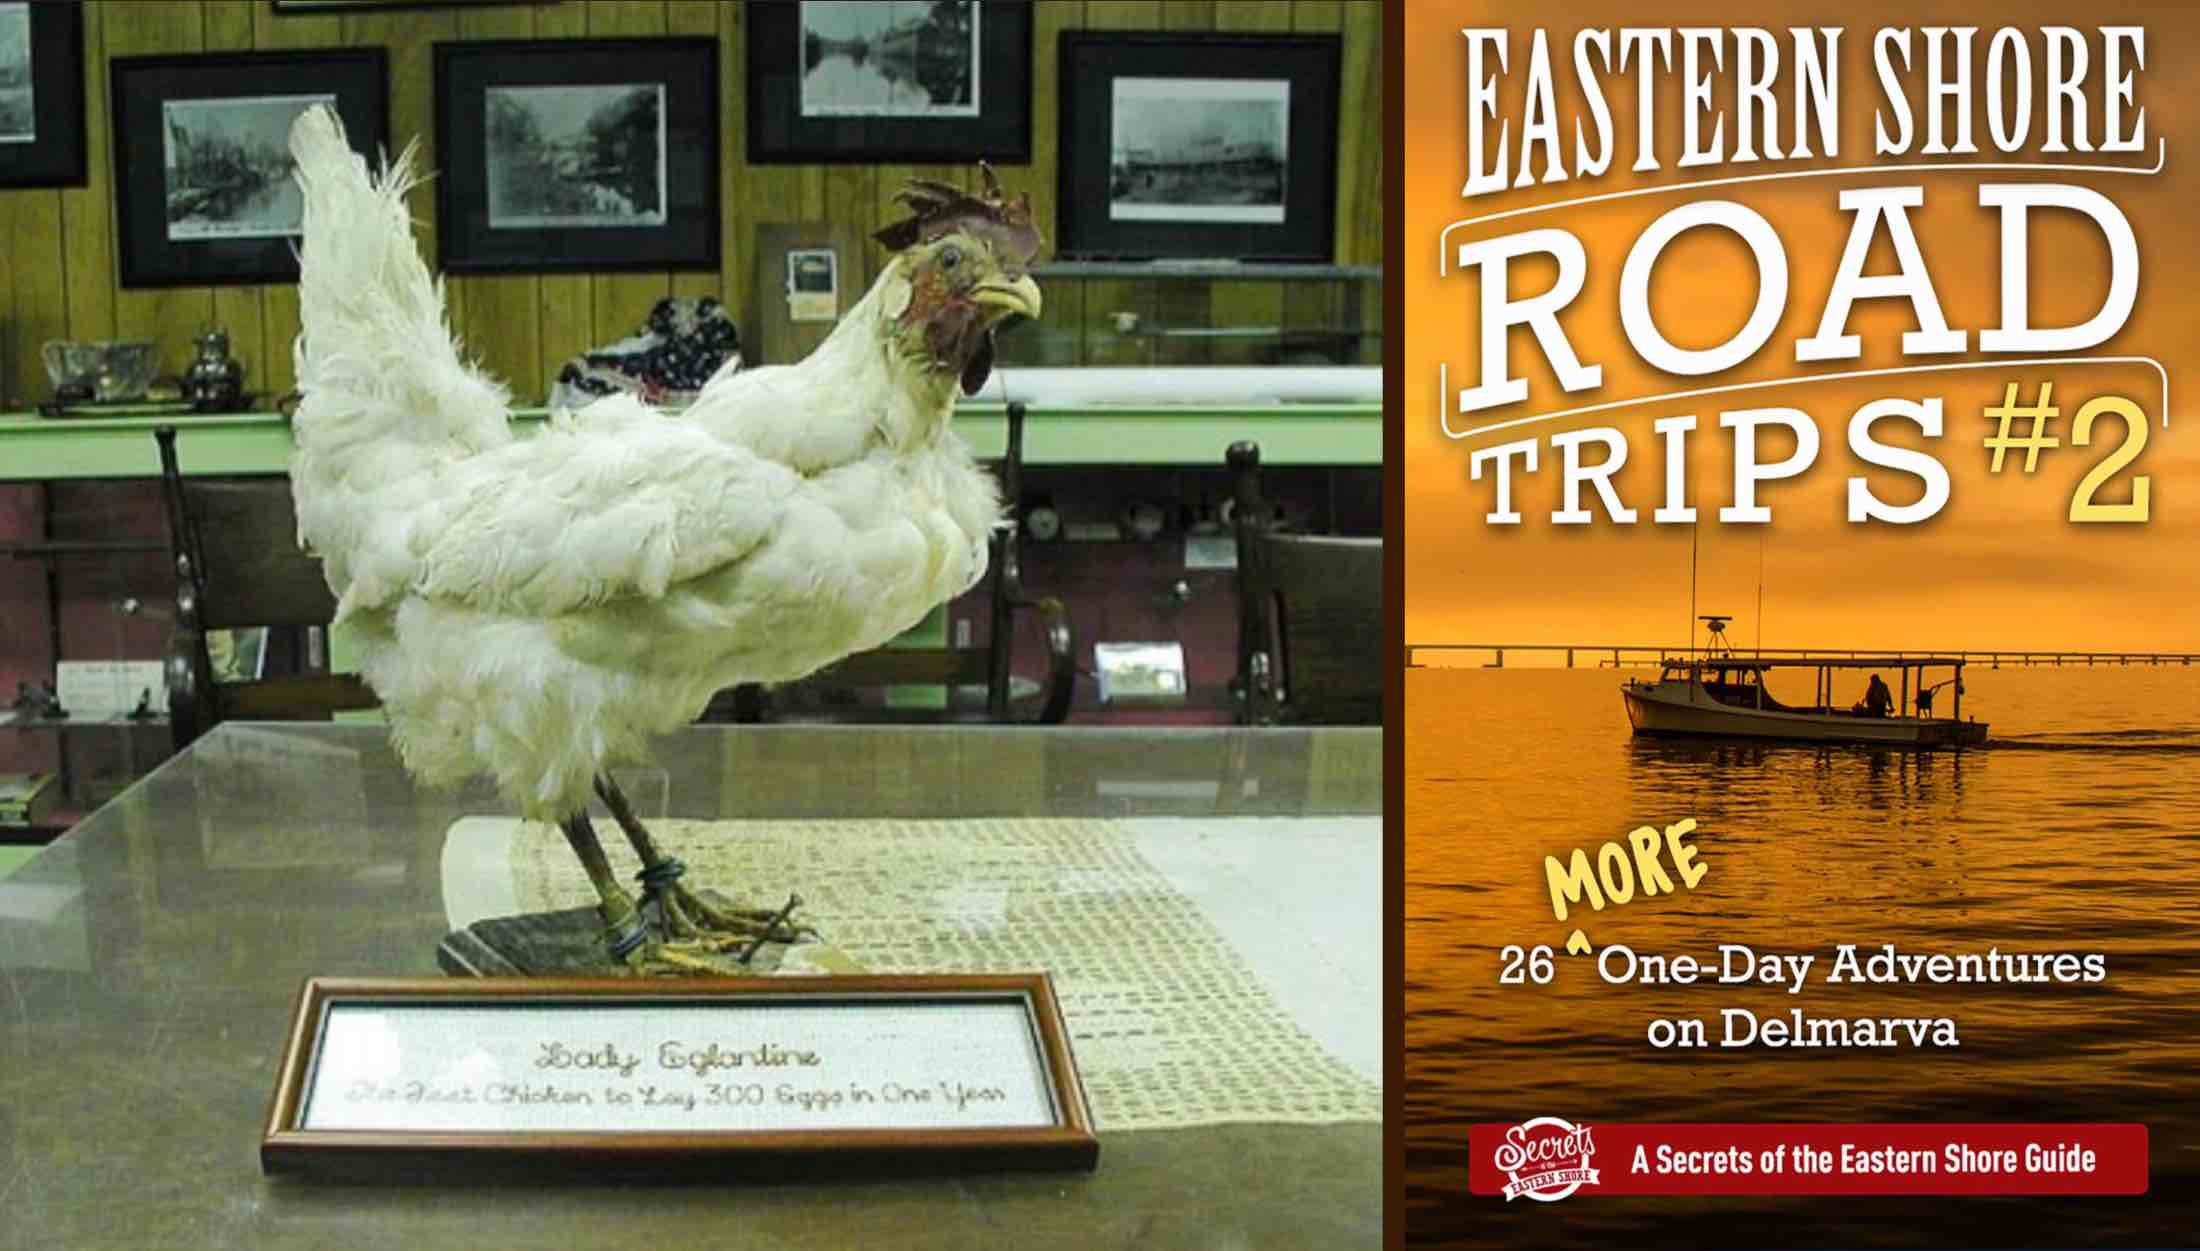 WAY BACK MACHINE: On the Trail of Lady Eglantine, the Miracle Hen of Greensboro